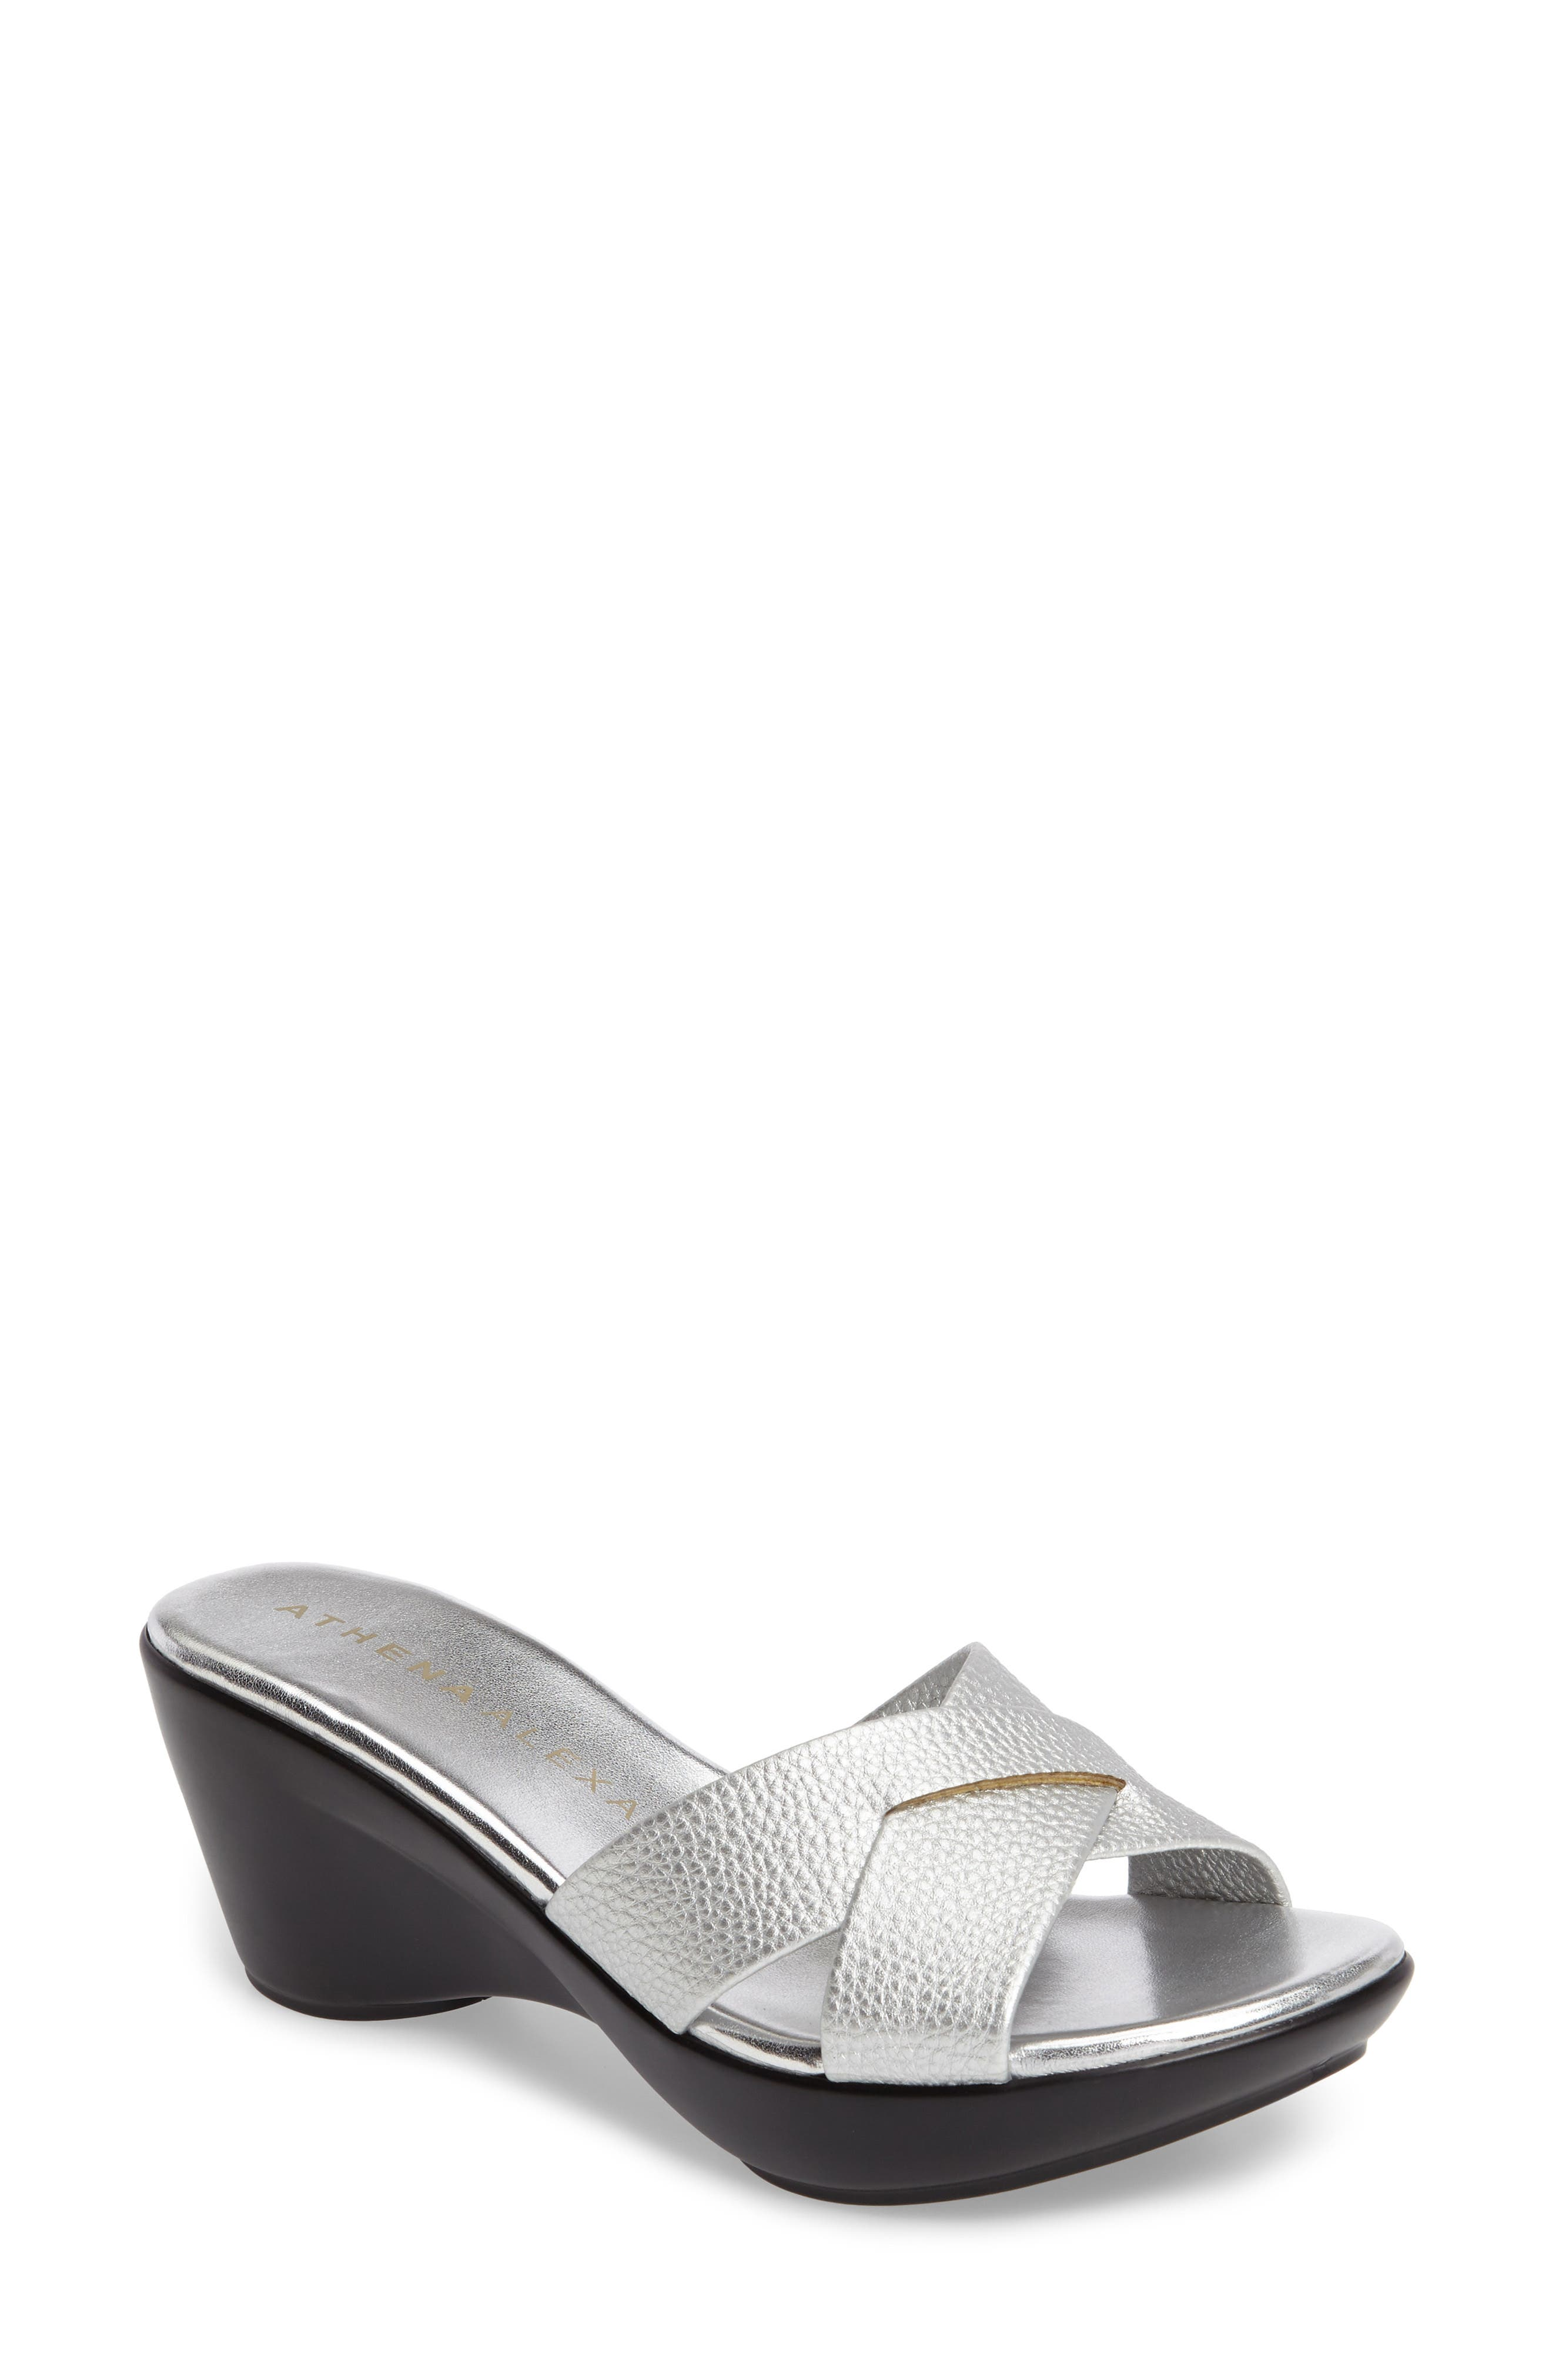 Verna Wedge Slide Sandal,                         Main,                         color, SILVER FAUX LEATHER